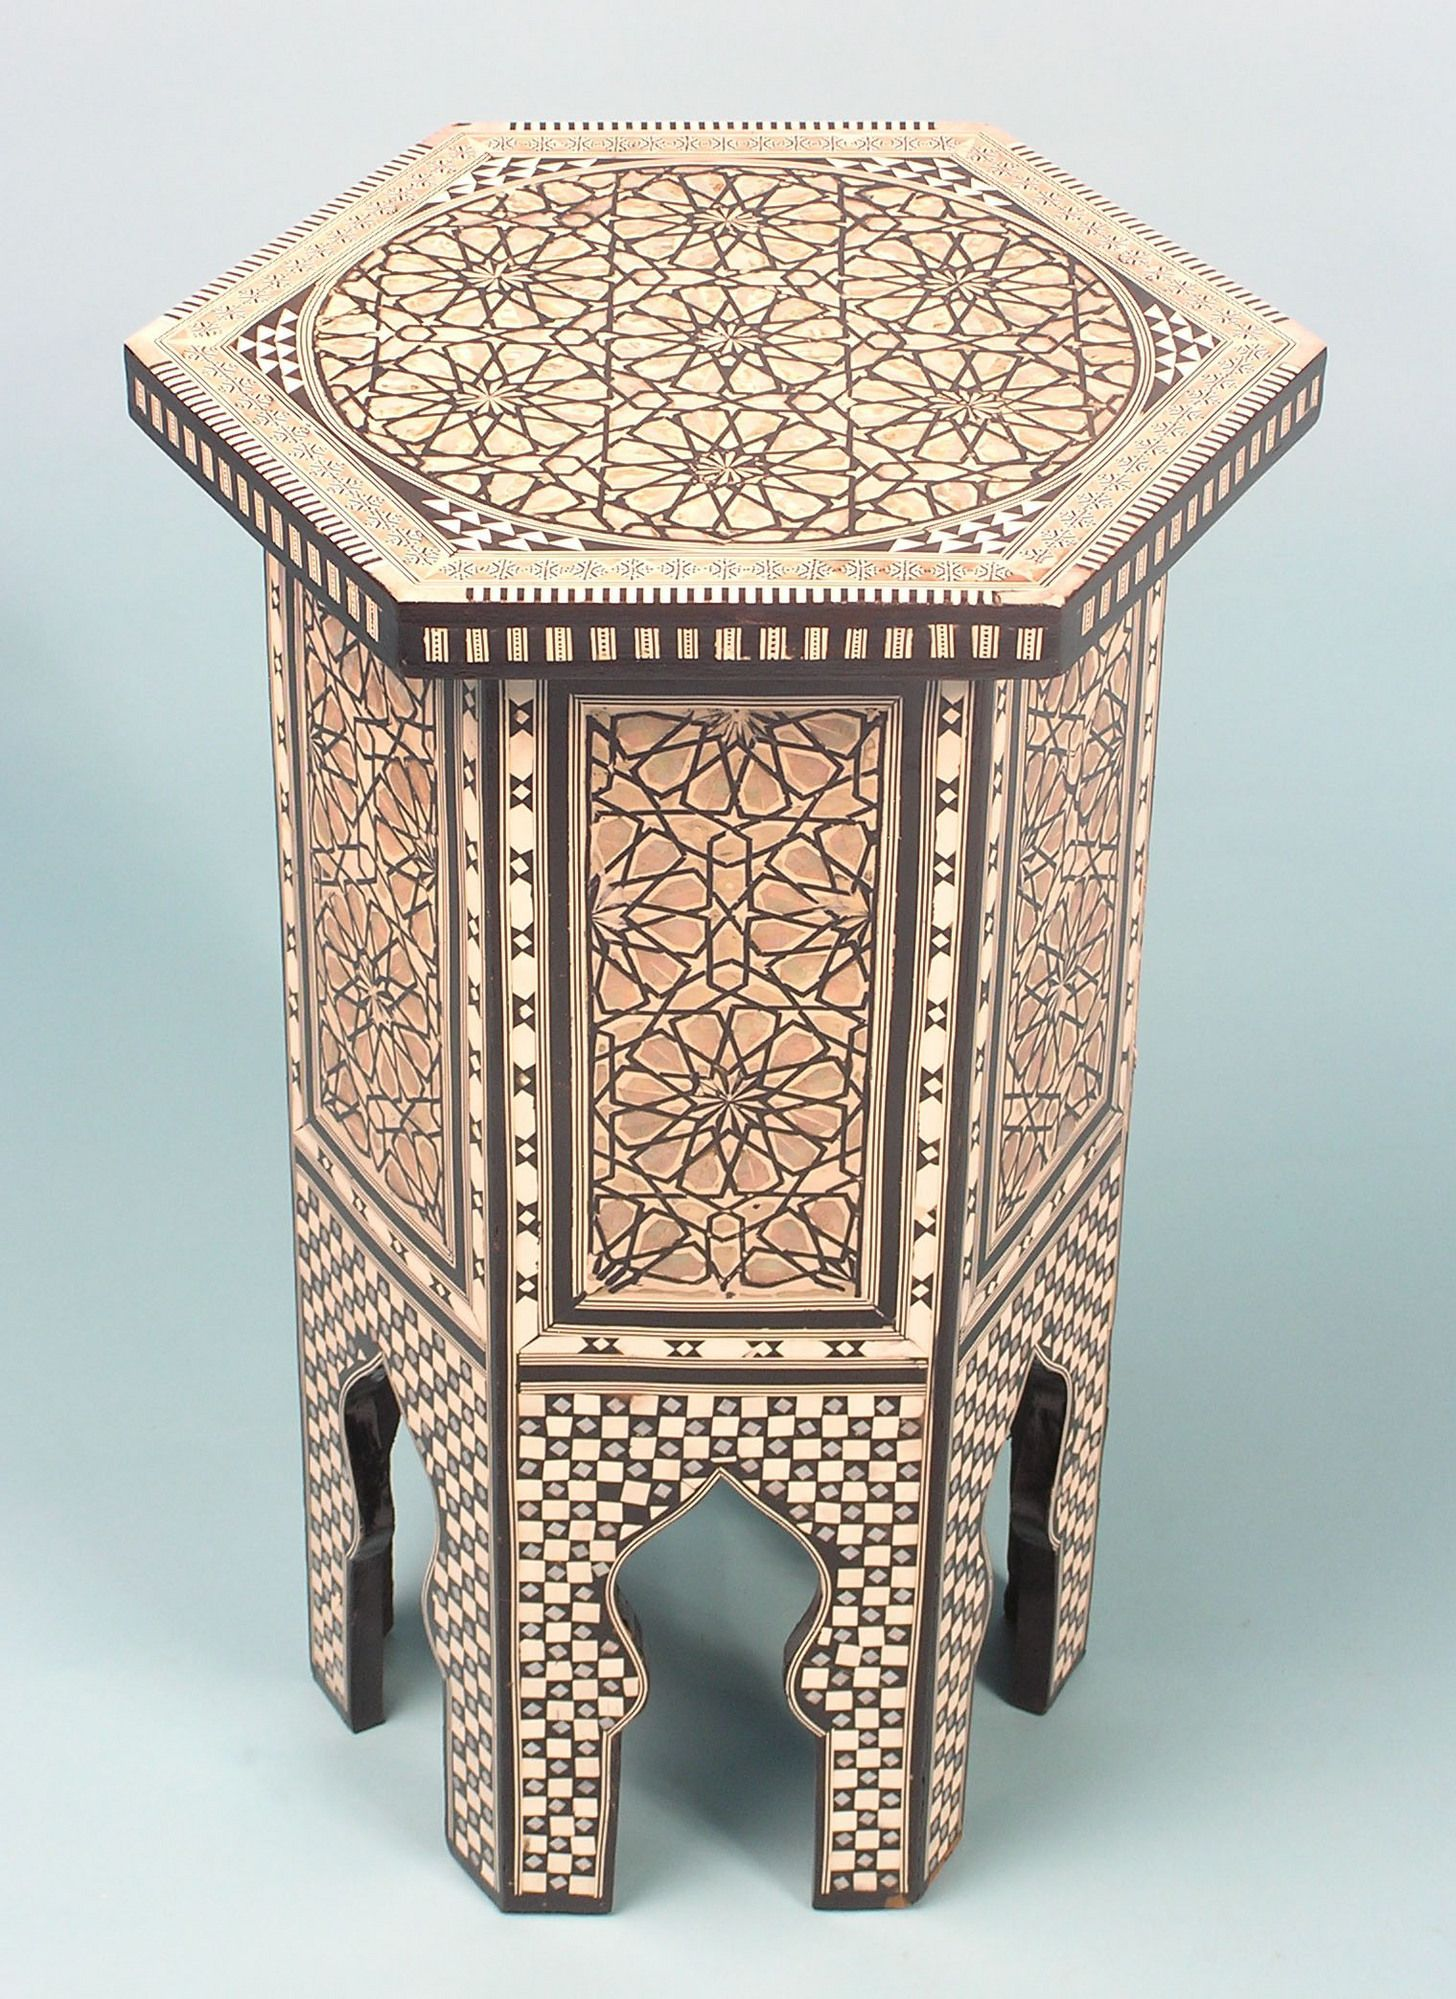 Hexagonal Table With Mother Of Pearl Table Salon Marocain